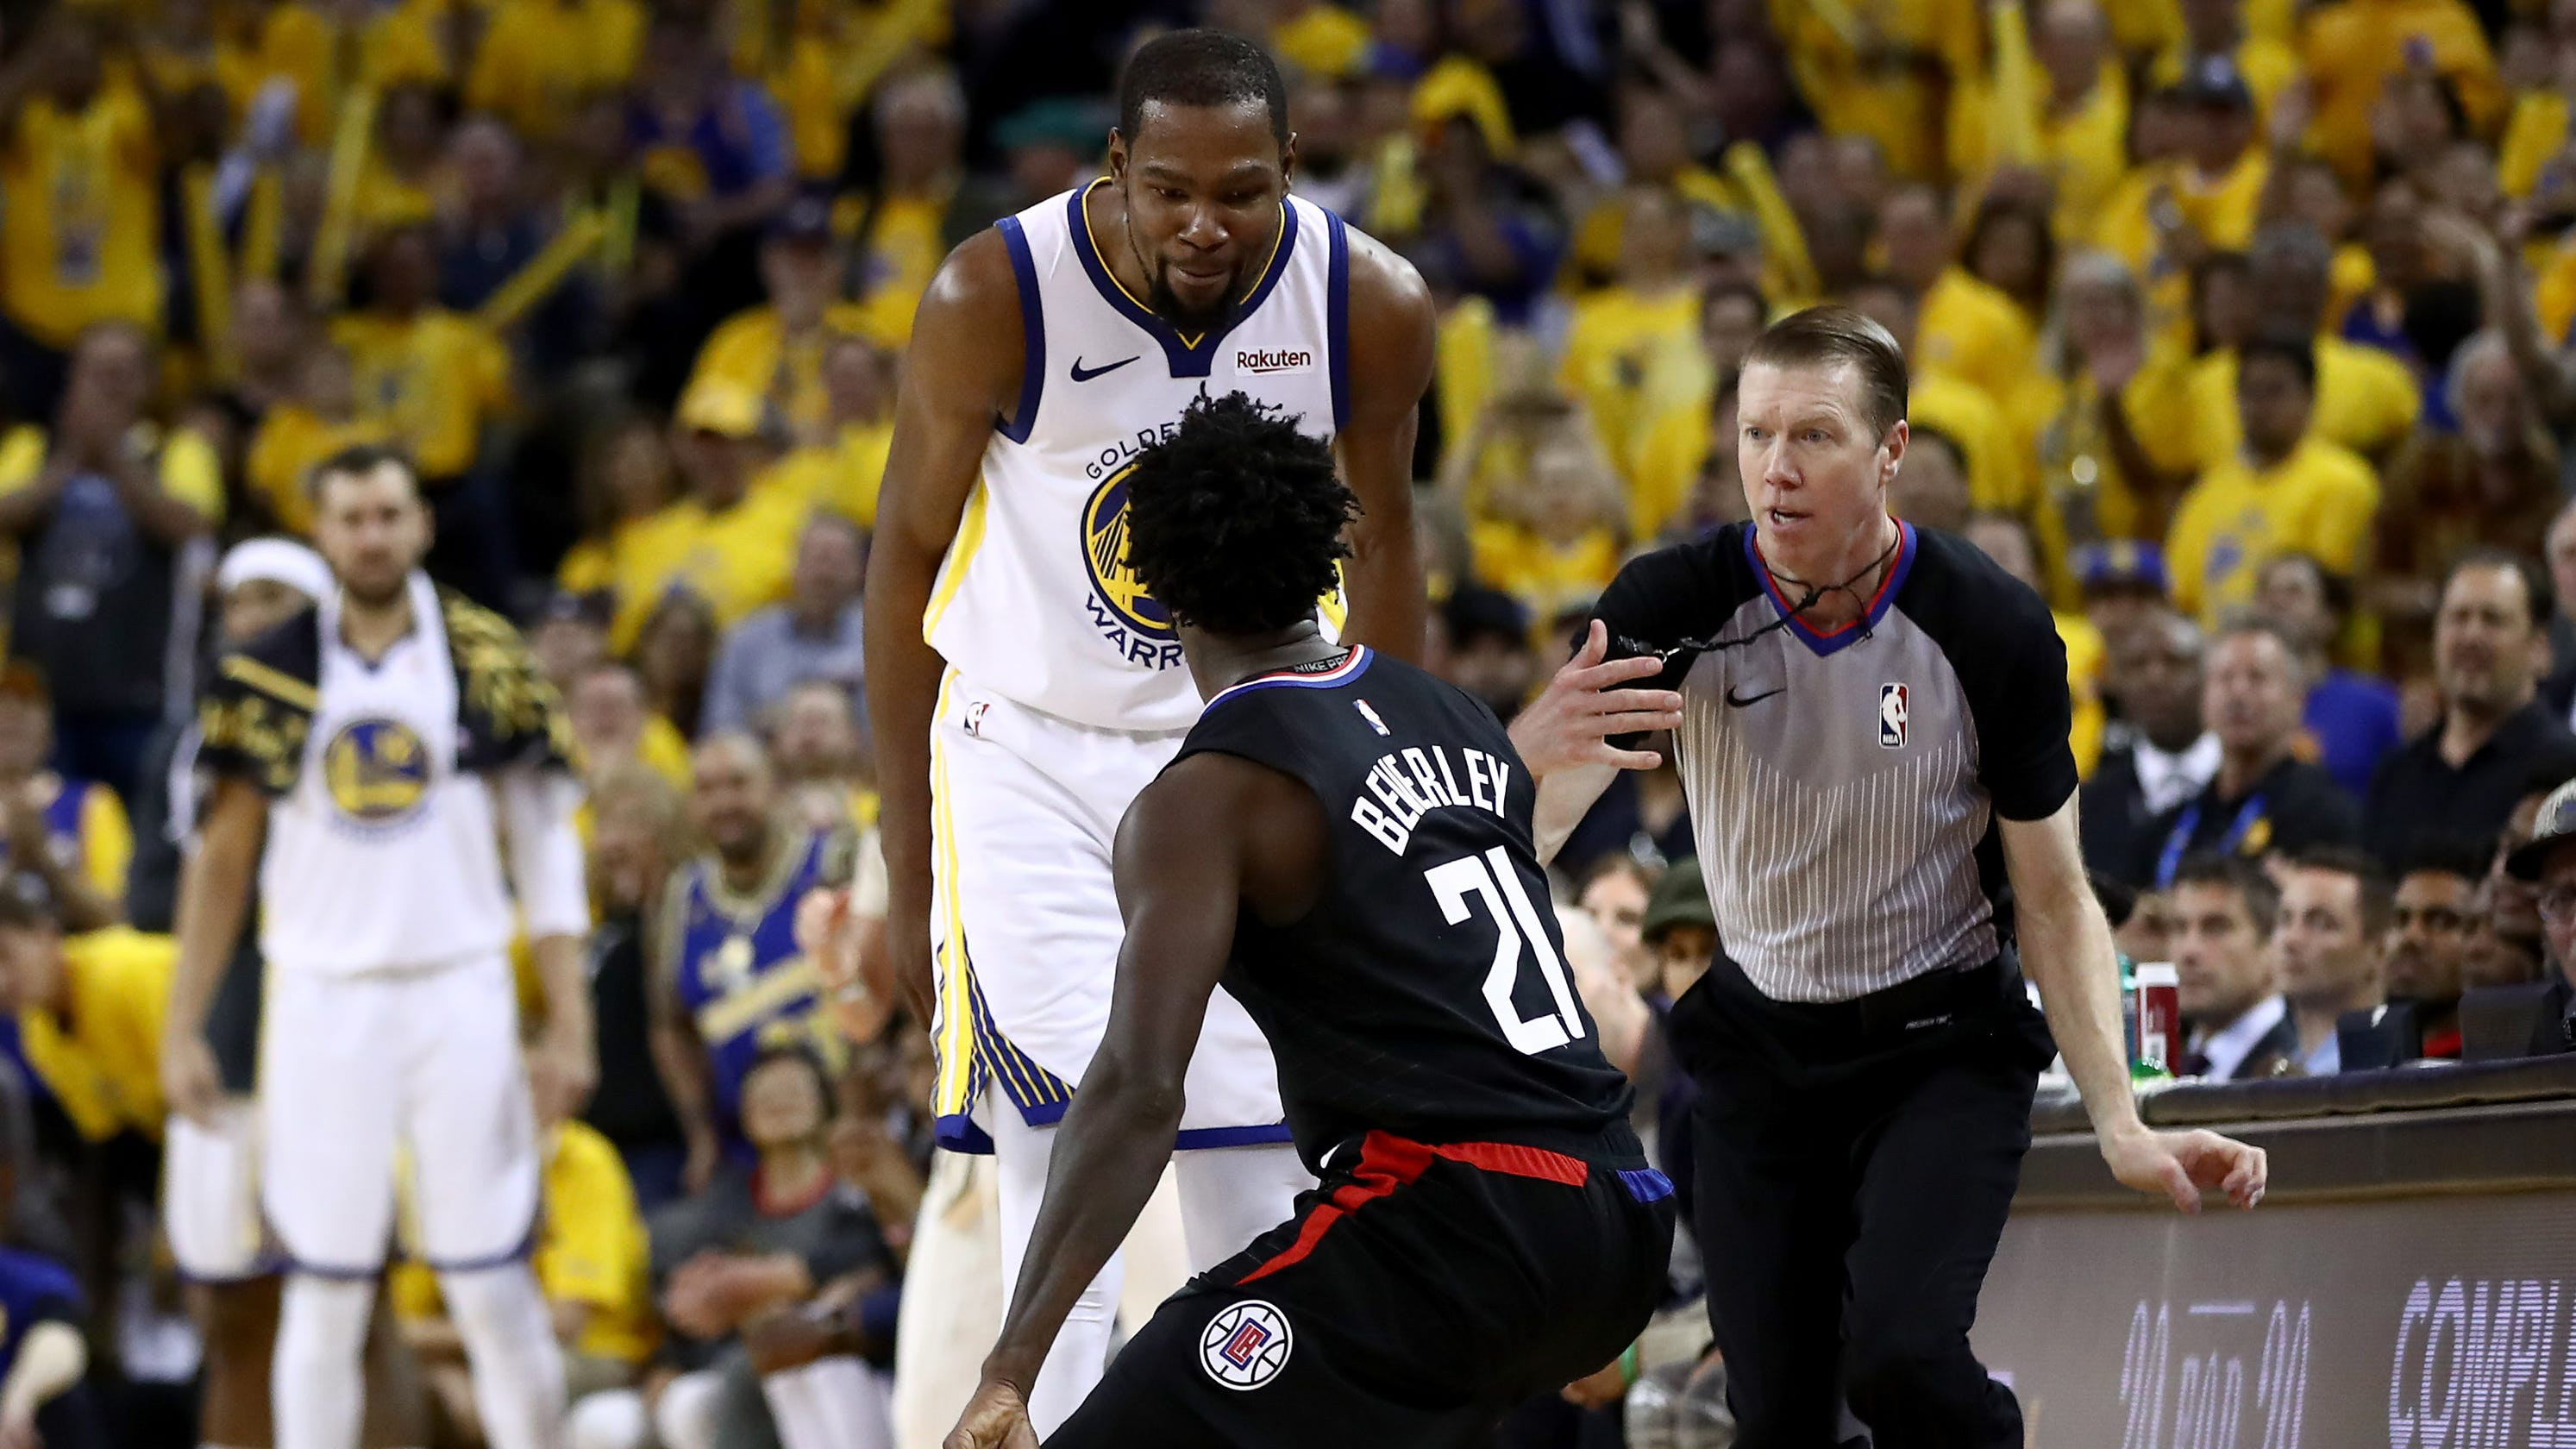 f9a92978b571 NBA playoffs  Kevin Durant ejected in Warriors win over Clippers